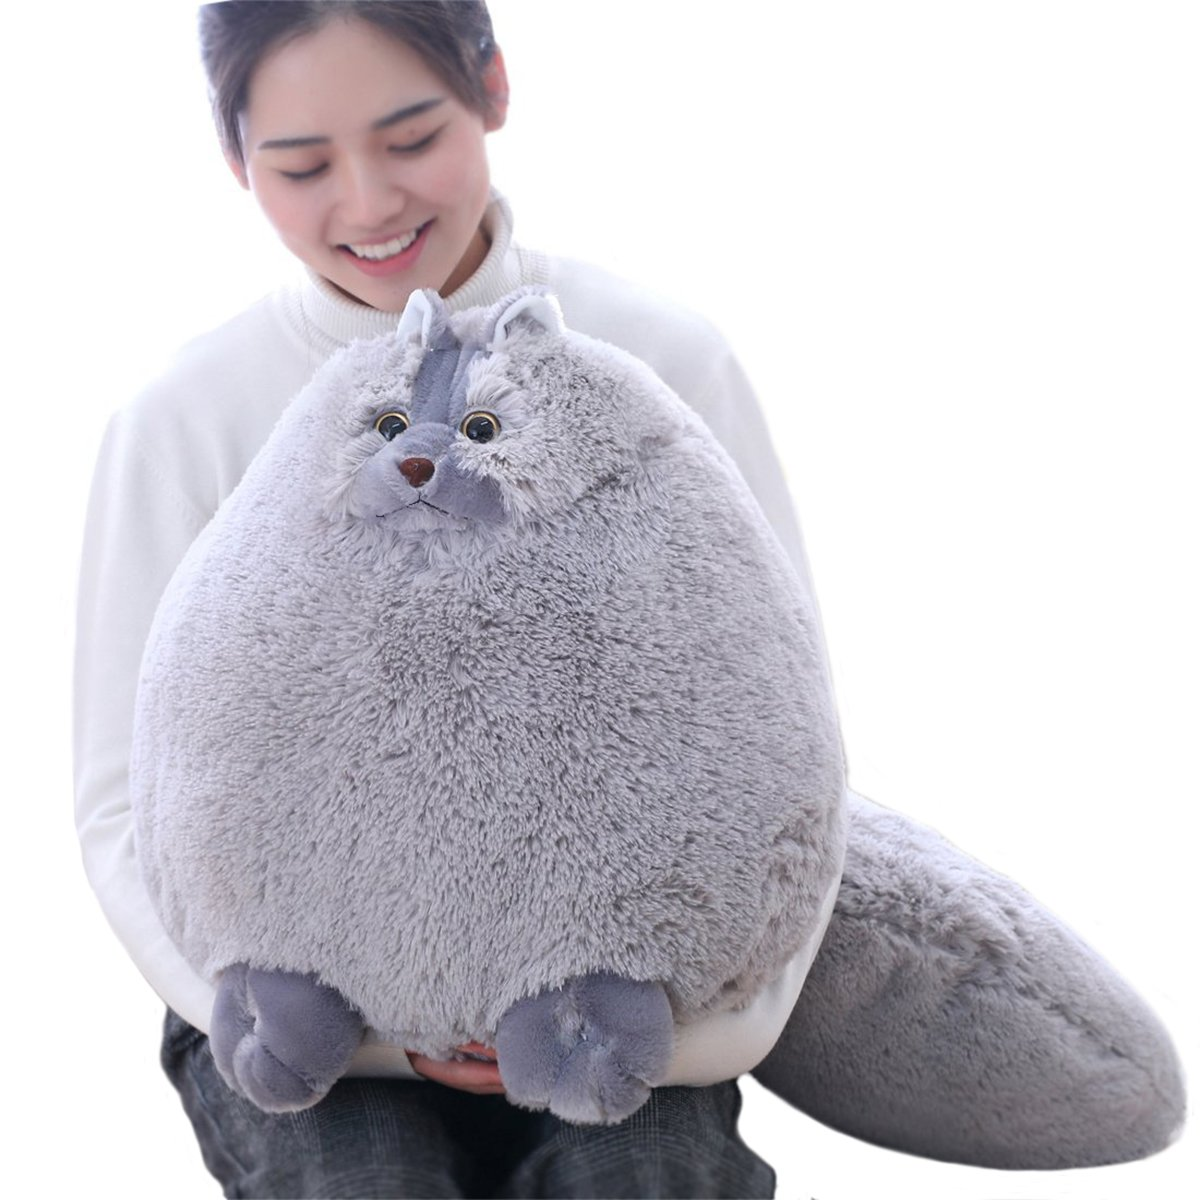 Winsterch Giant Cats Stuffed Animal Plush Cat Toys Pillow Kids Gifts Baby Doll,Gray,19.7 inches